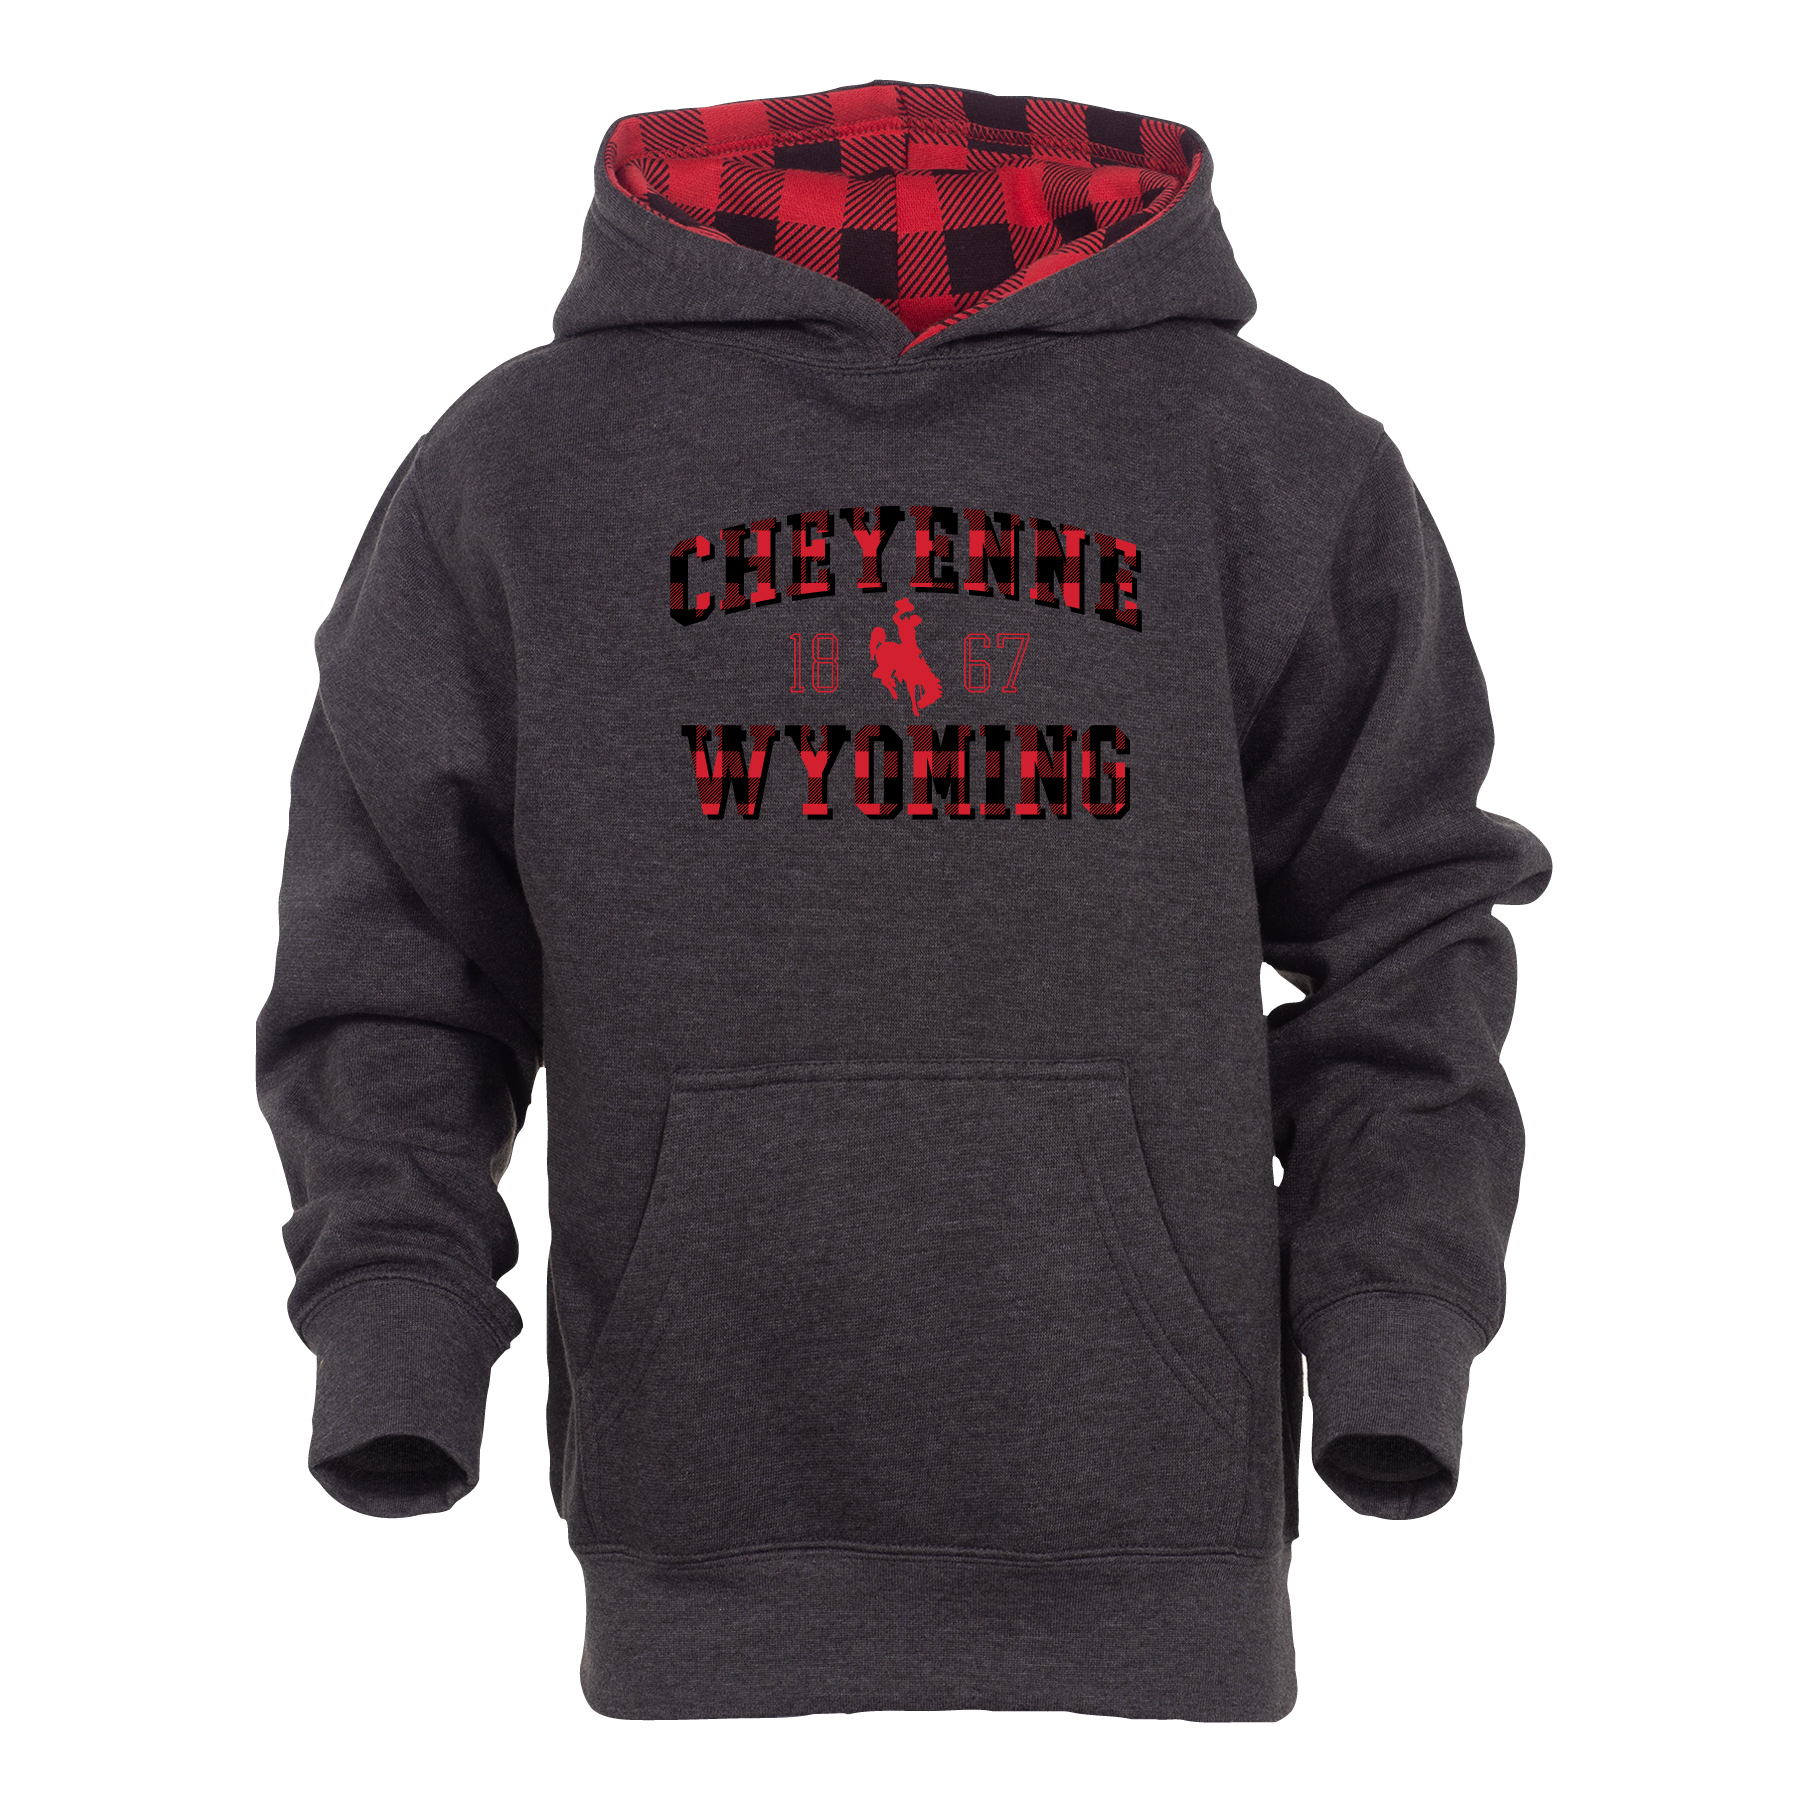 Youth Buffalo Plaid Mini Me Hoodie